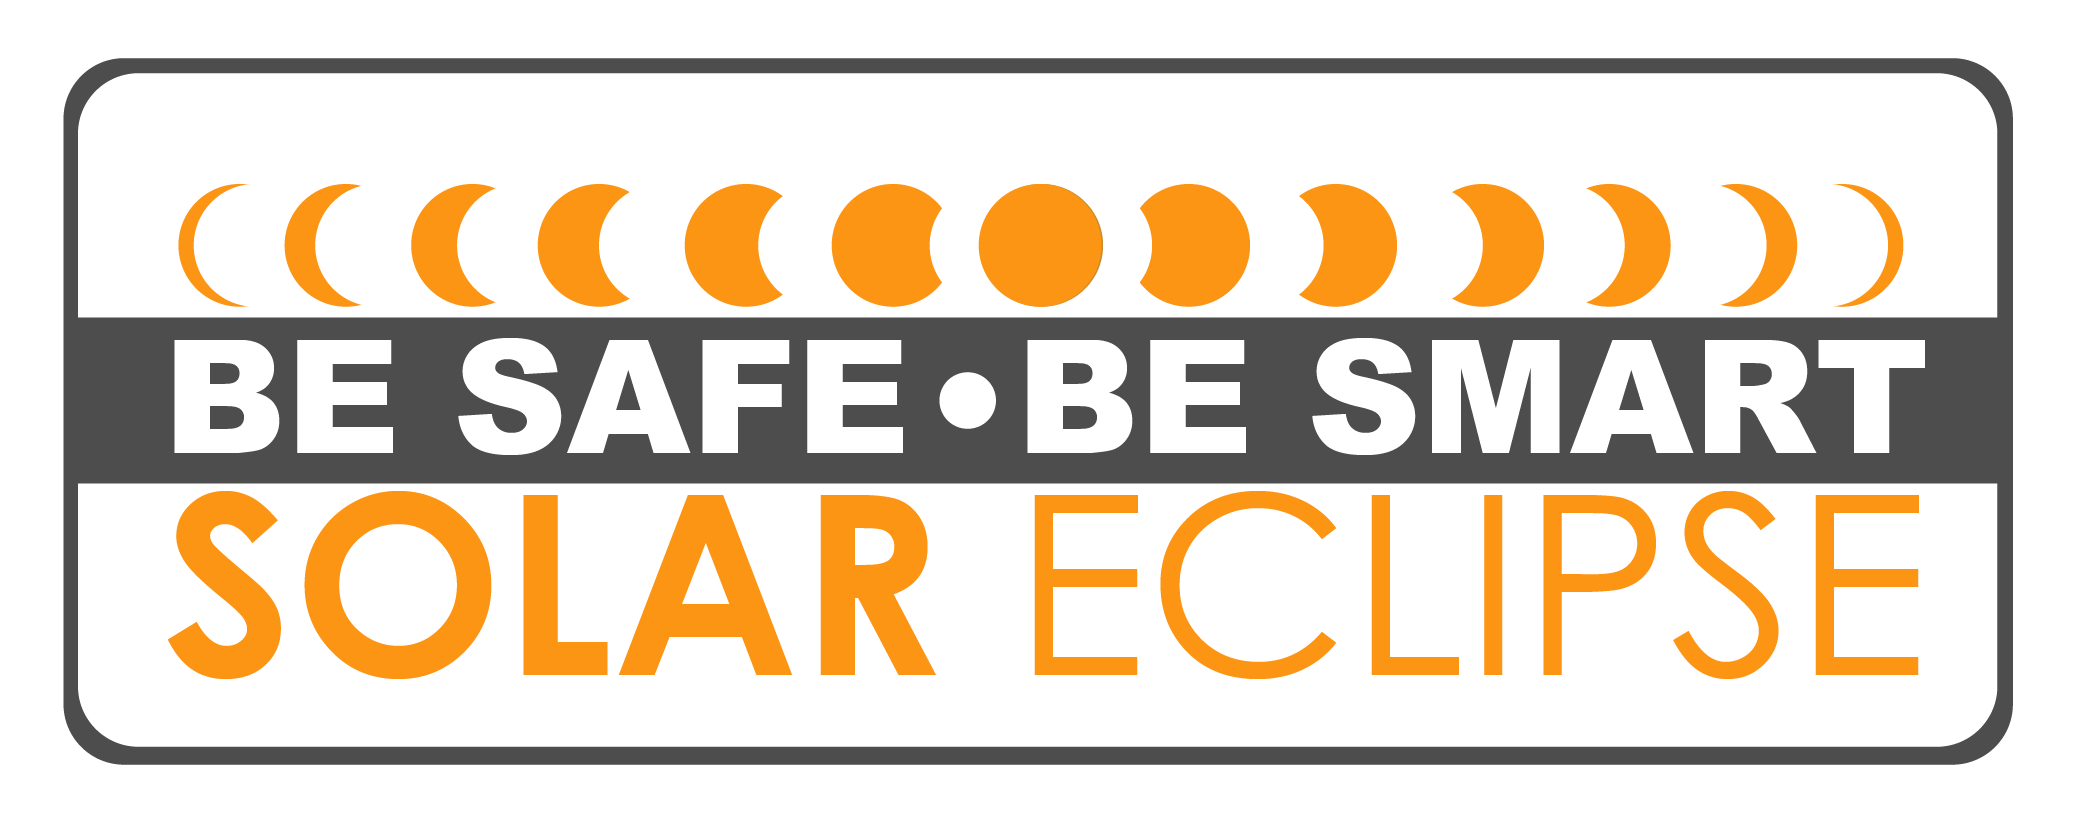 Be Safe Be Smart: Eclipse Safety Tips